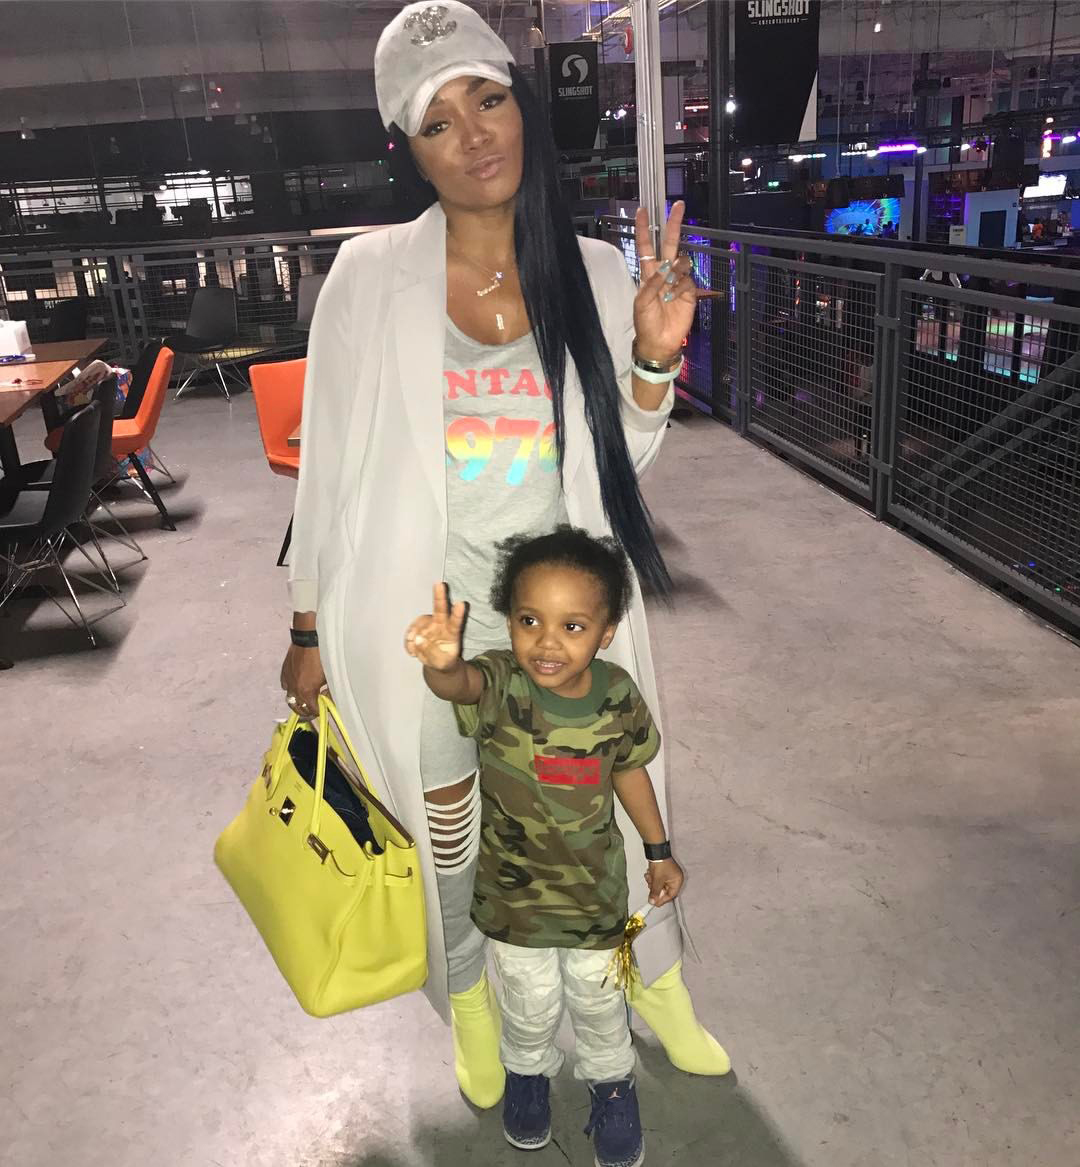 New Hair Alert: Rasheeda Frost Rocks New Pink Hair But Has Fans Confused Due To Her Shirt - Check Out The Message It Has Printed On